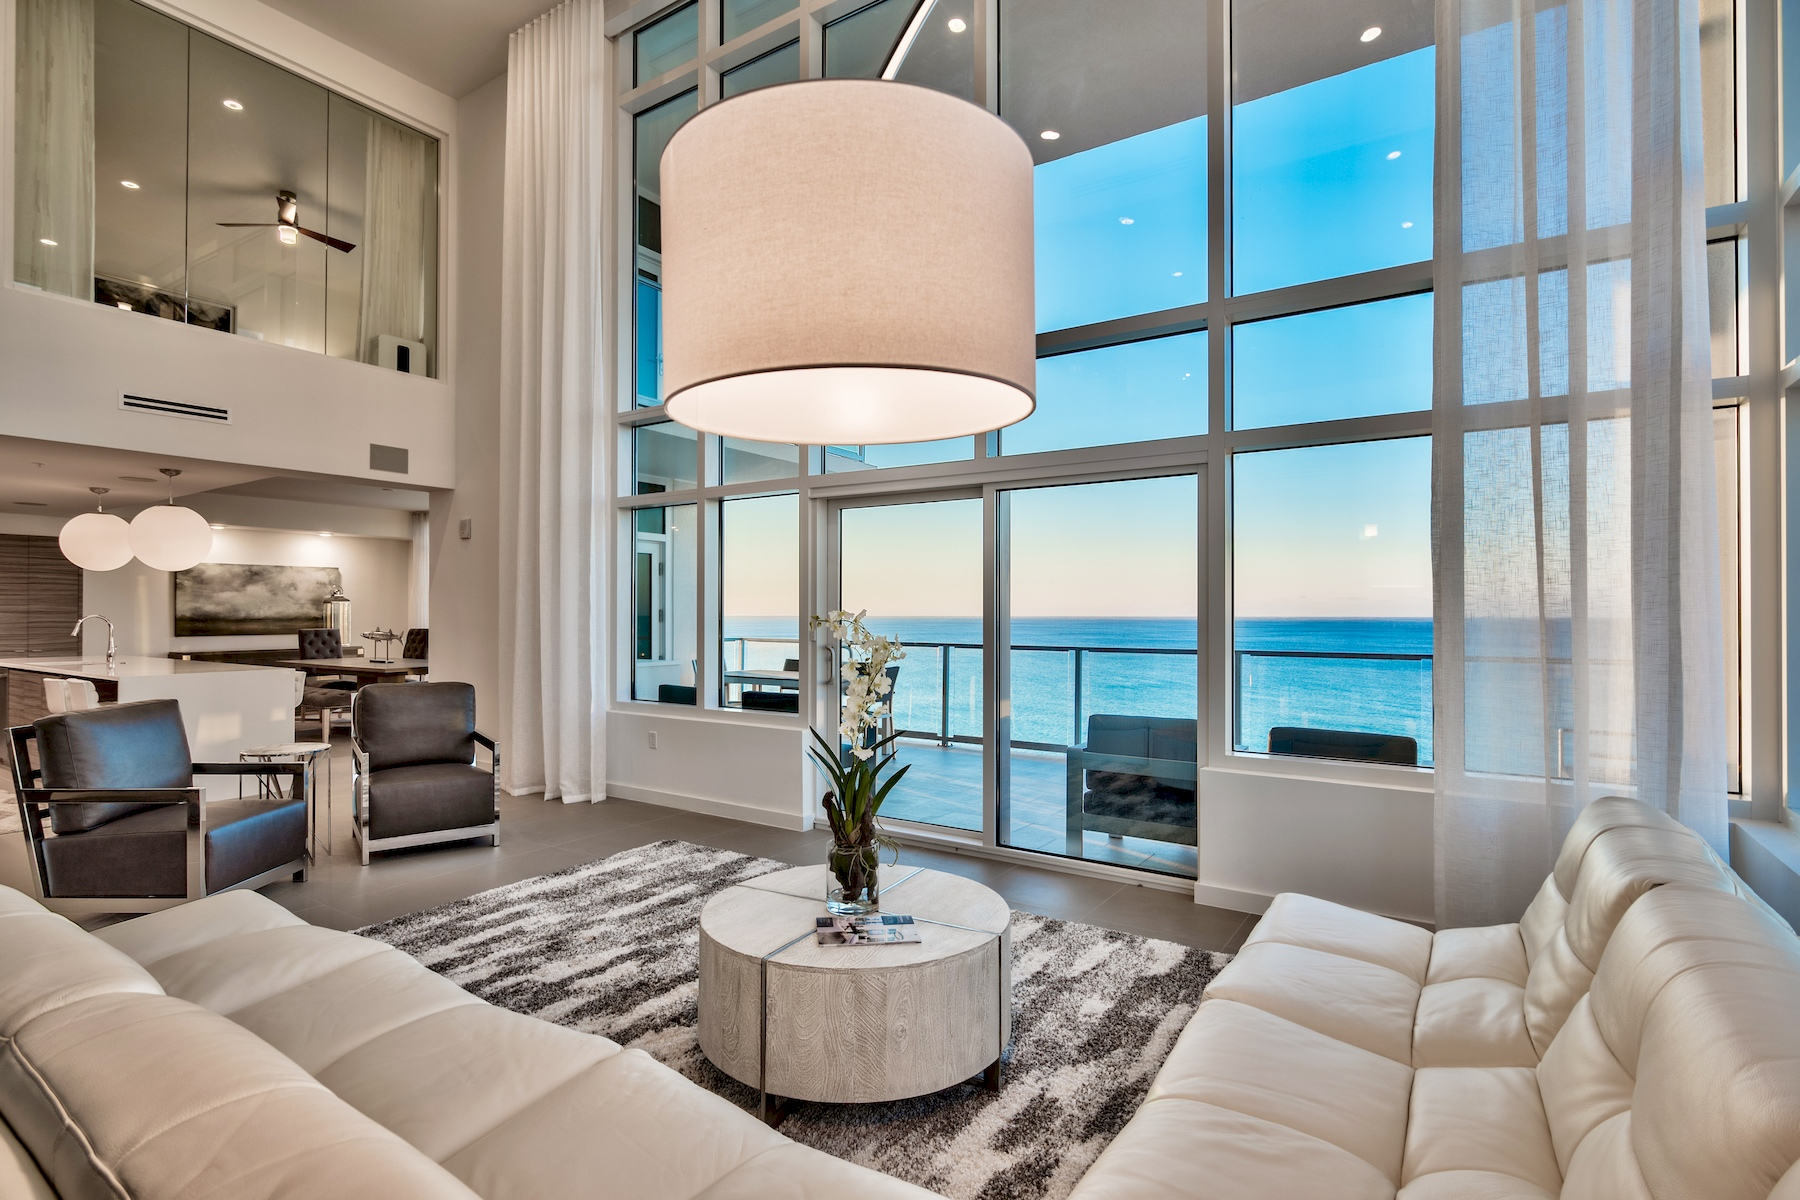 شقة بعمارة للـ Sale في Stunning 2 Story Penthouse with Unobstructed Gulf Views 1900 Scenic Hwy 98 1002, Destin, Florida, 32541 United States